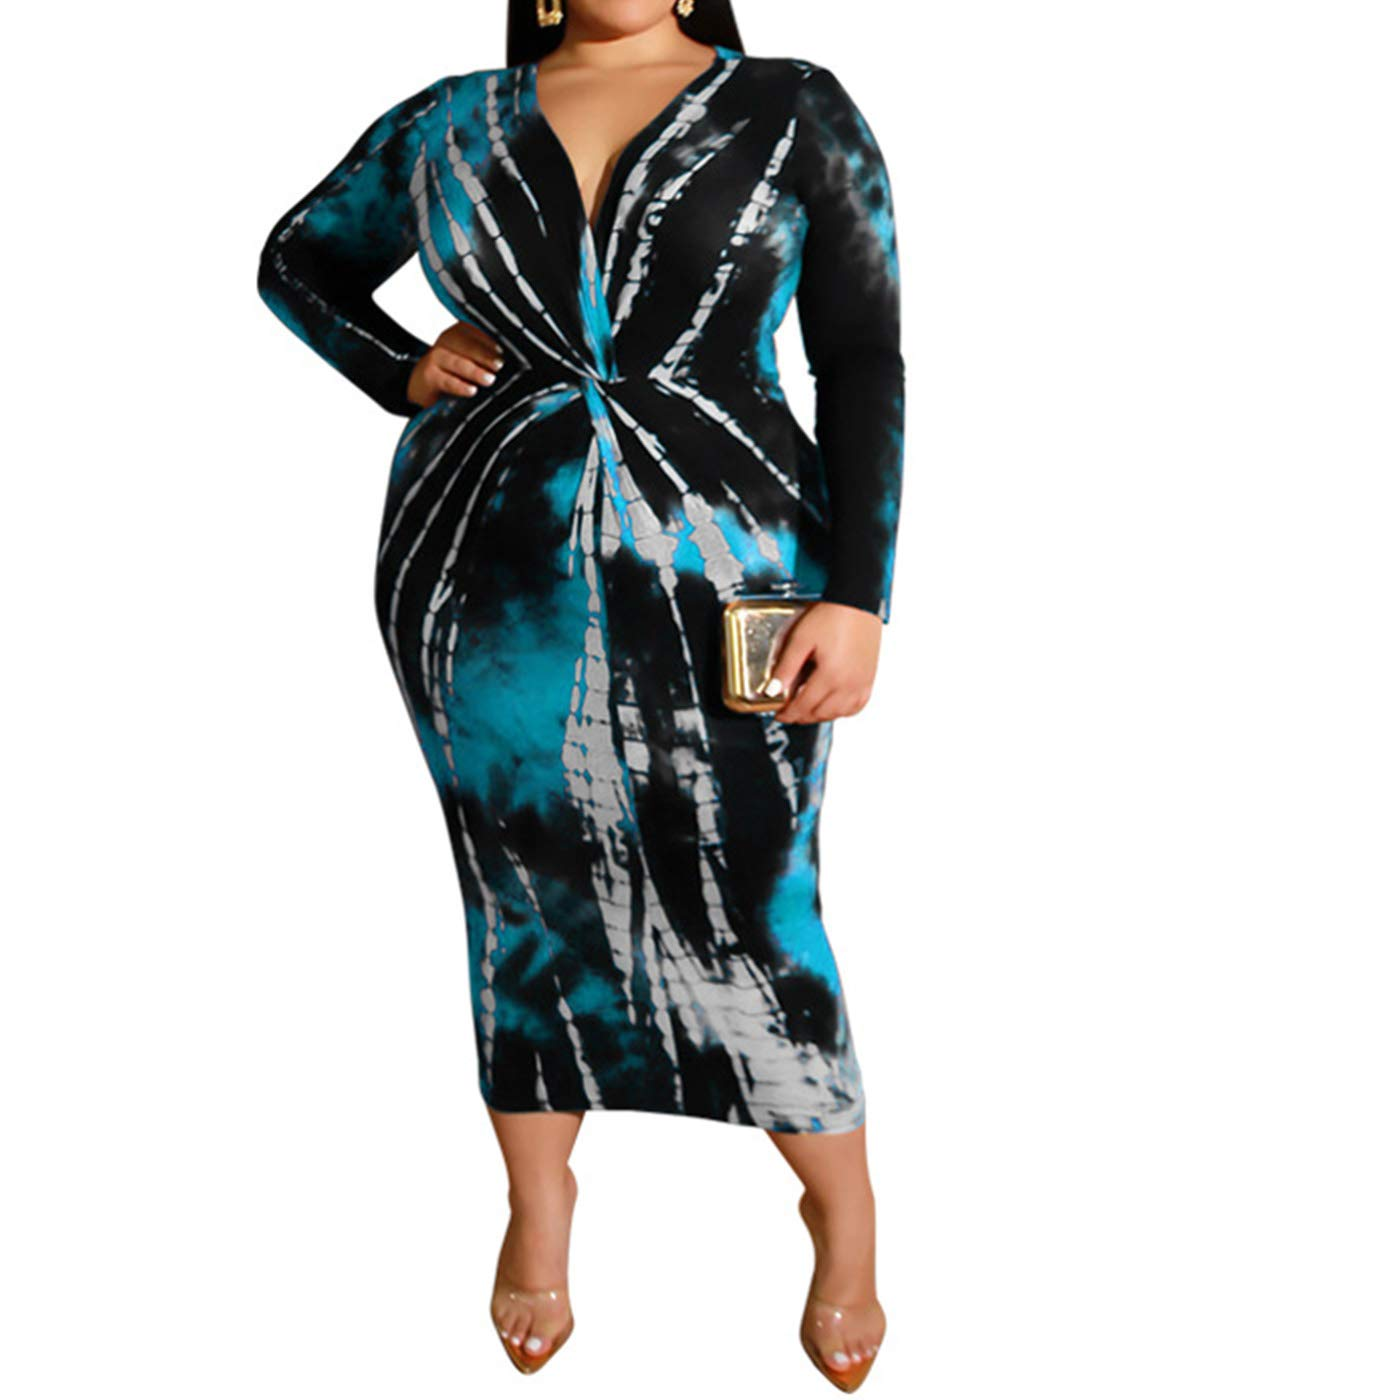 Available at Amazon: IyMoo Women Sexy Plus Size Dress - Club Outfits Floral Print V Neck Long Sleeve Tie Dye Party Bodycon Dress